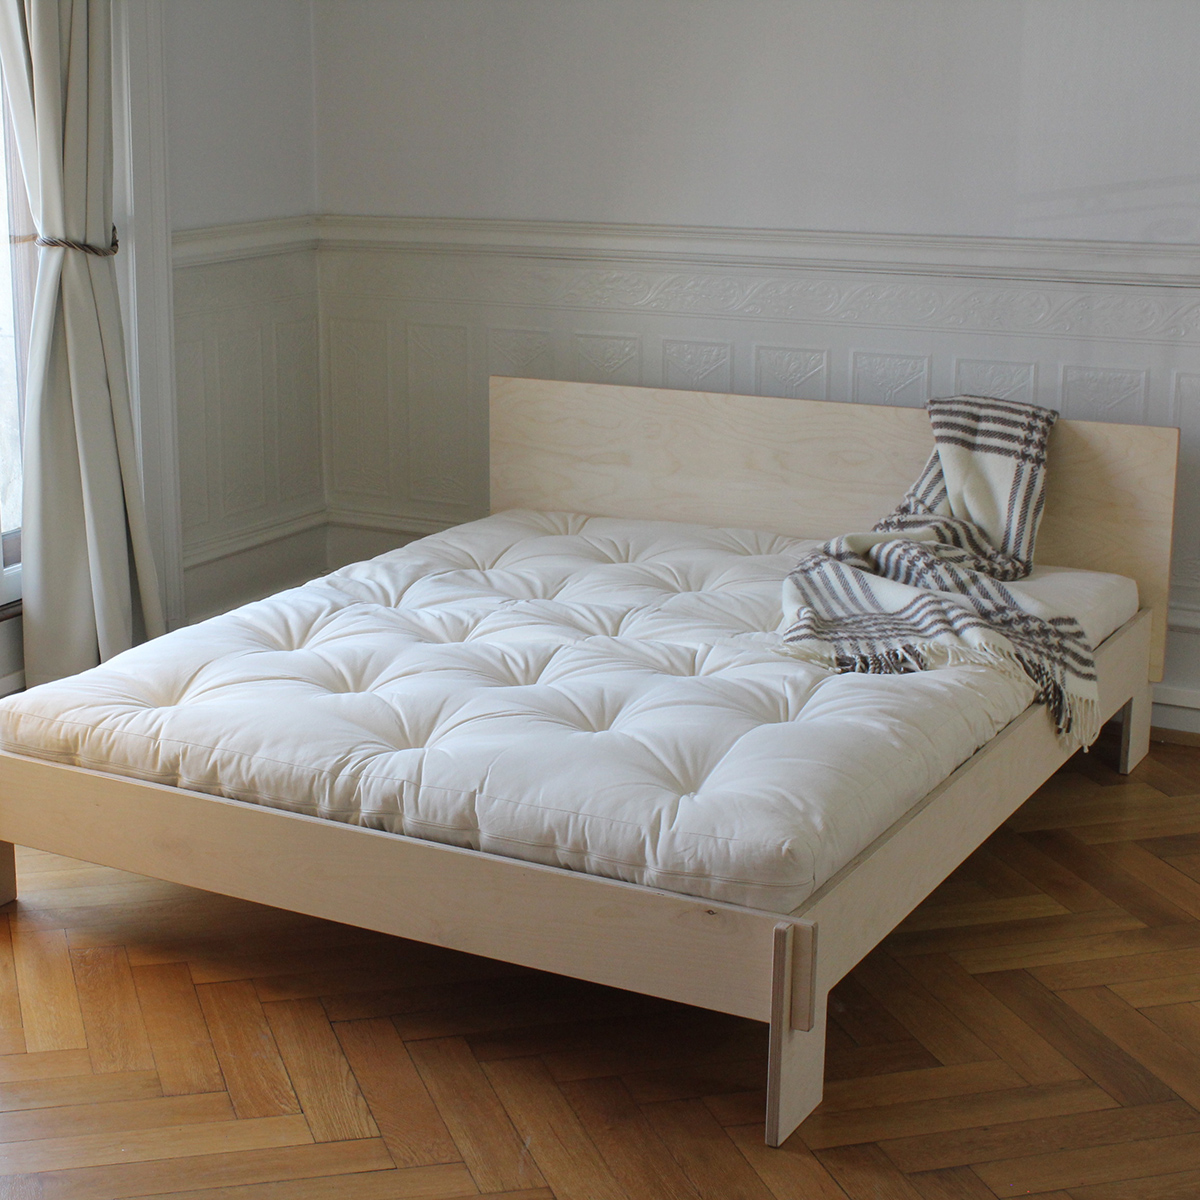 Futon Design Marseille Europe And Nature Blog Futon Bett